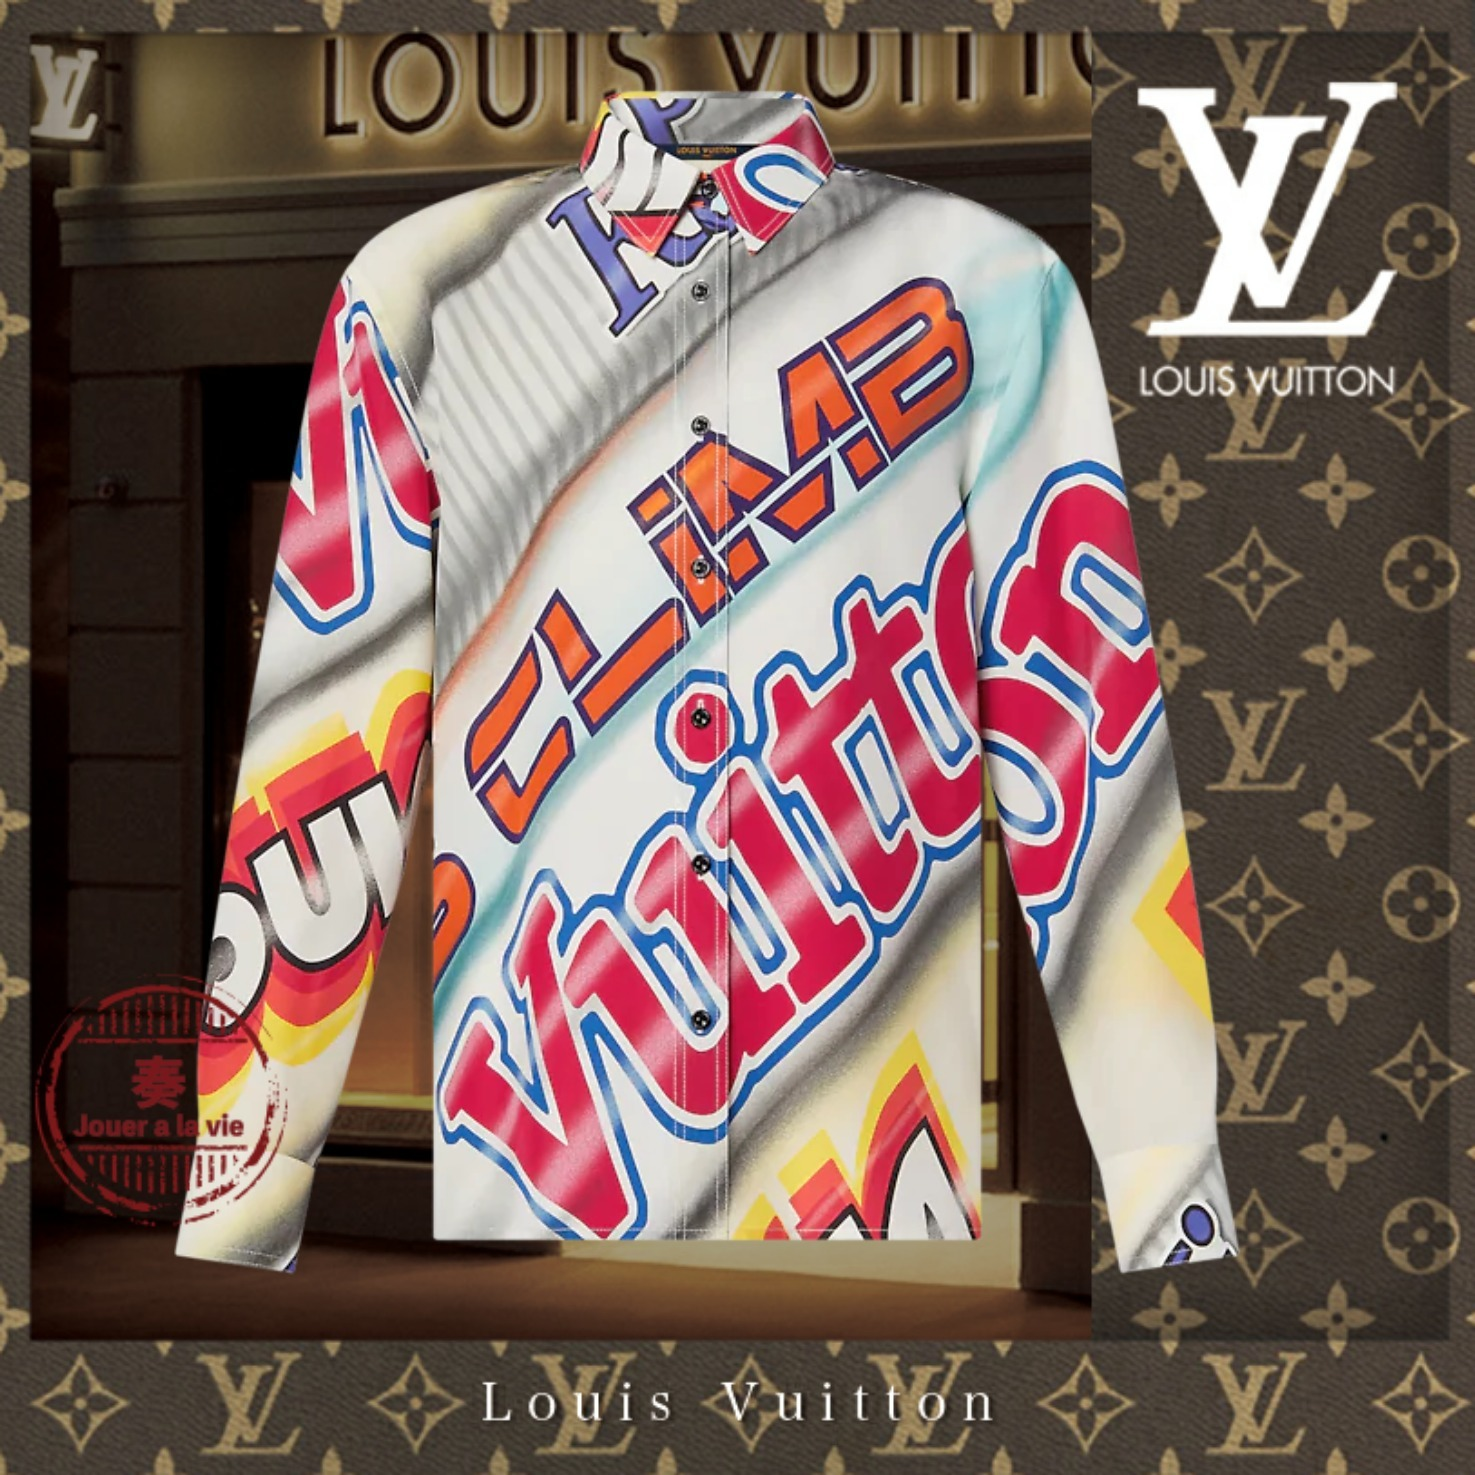 21SS 直営 Louis Vuitton ステートメントロングスリーブシャツ (Louis Vuitton/ブラウス・シャツ) 1A8S0N  1A8S0O  1A8S0P